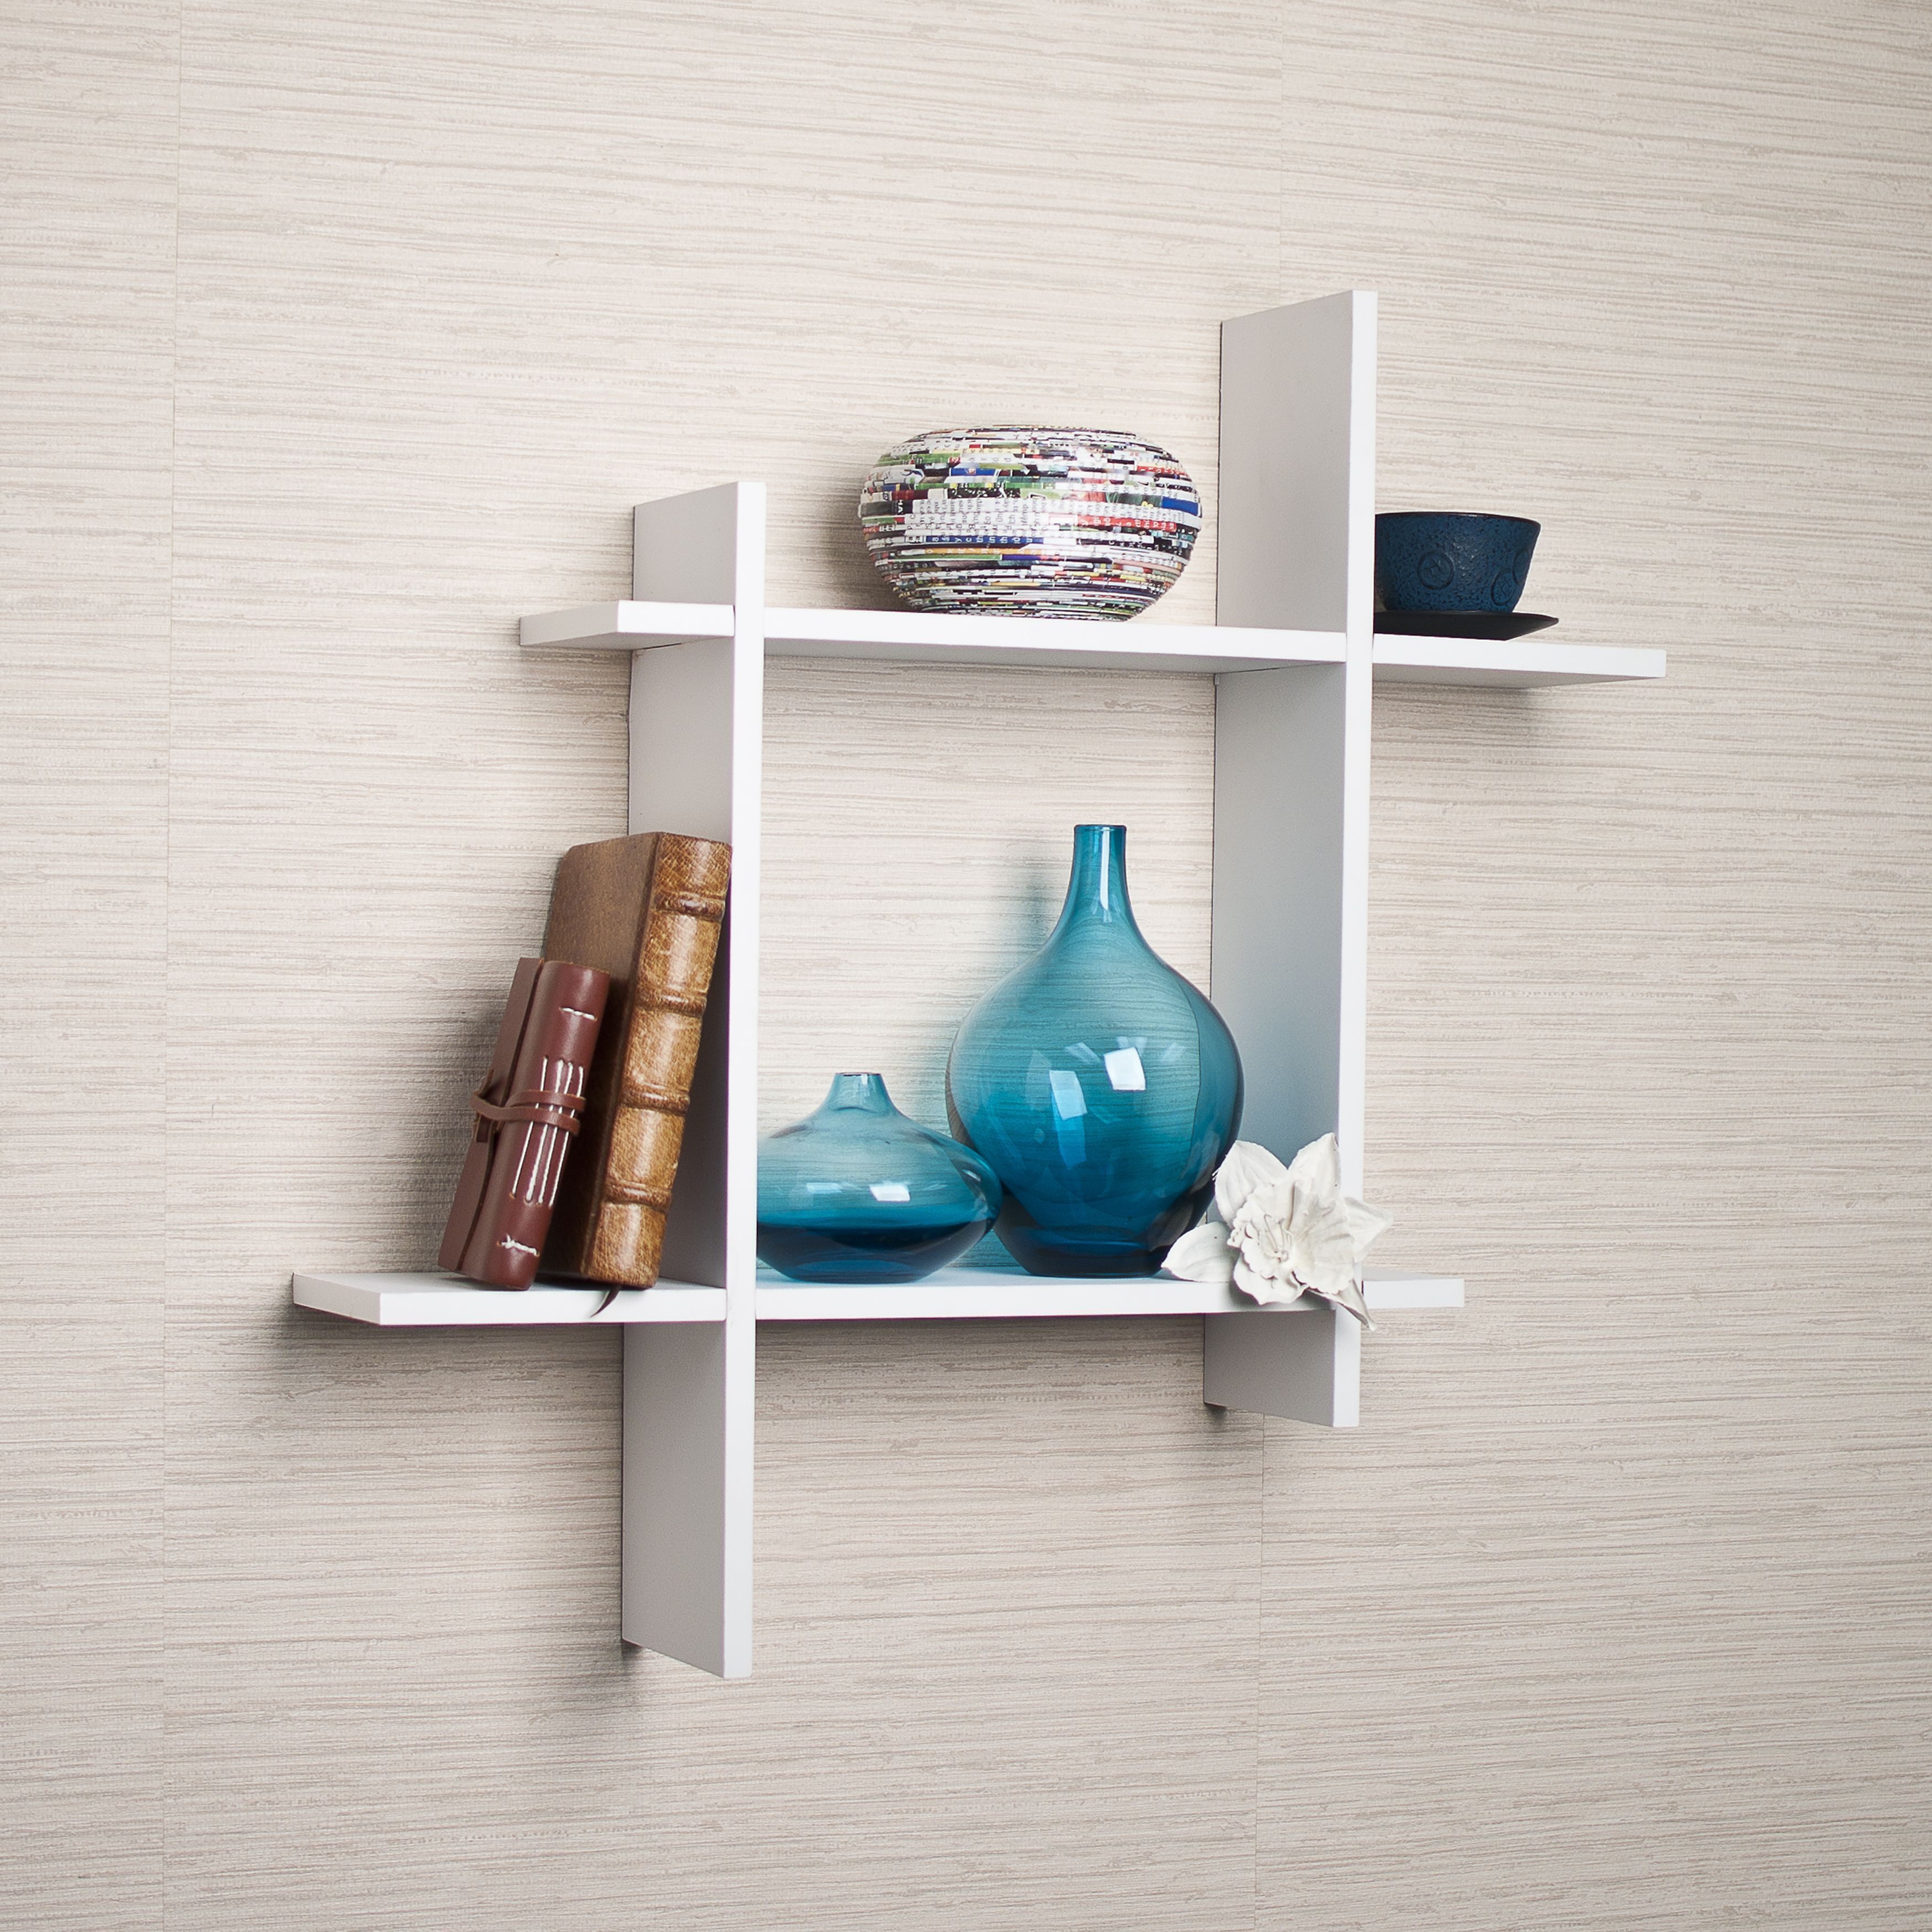 Decorative Wall Shelf Shows 4 Asymmetric Sides To A Square Which Intersect And Connect With Each Other Made Of Laminated Mdf It Attaches The